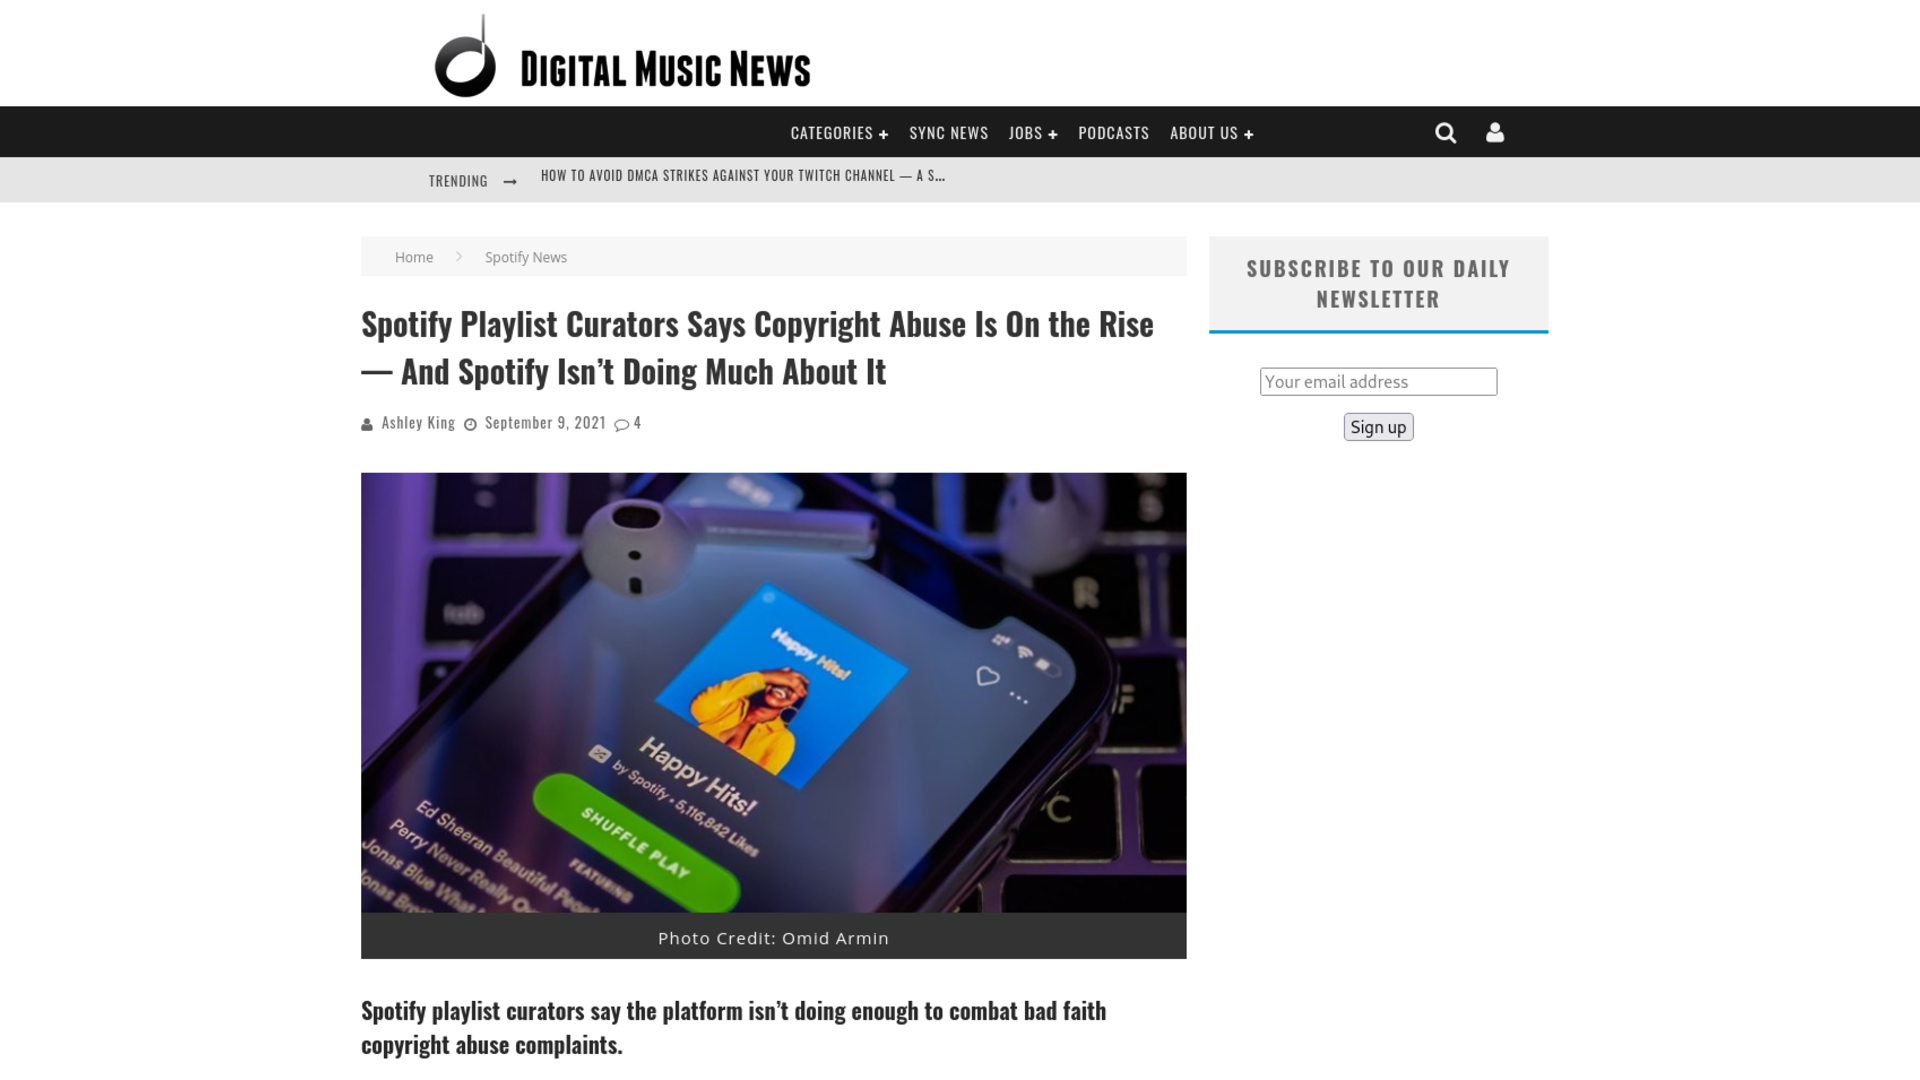 Fairness Rocks News Spotify Playlist Curators Says Copyright Abuse Is On the Rise — And Spotify Isn't Doing Much About It